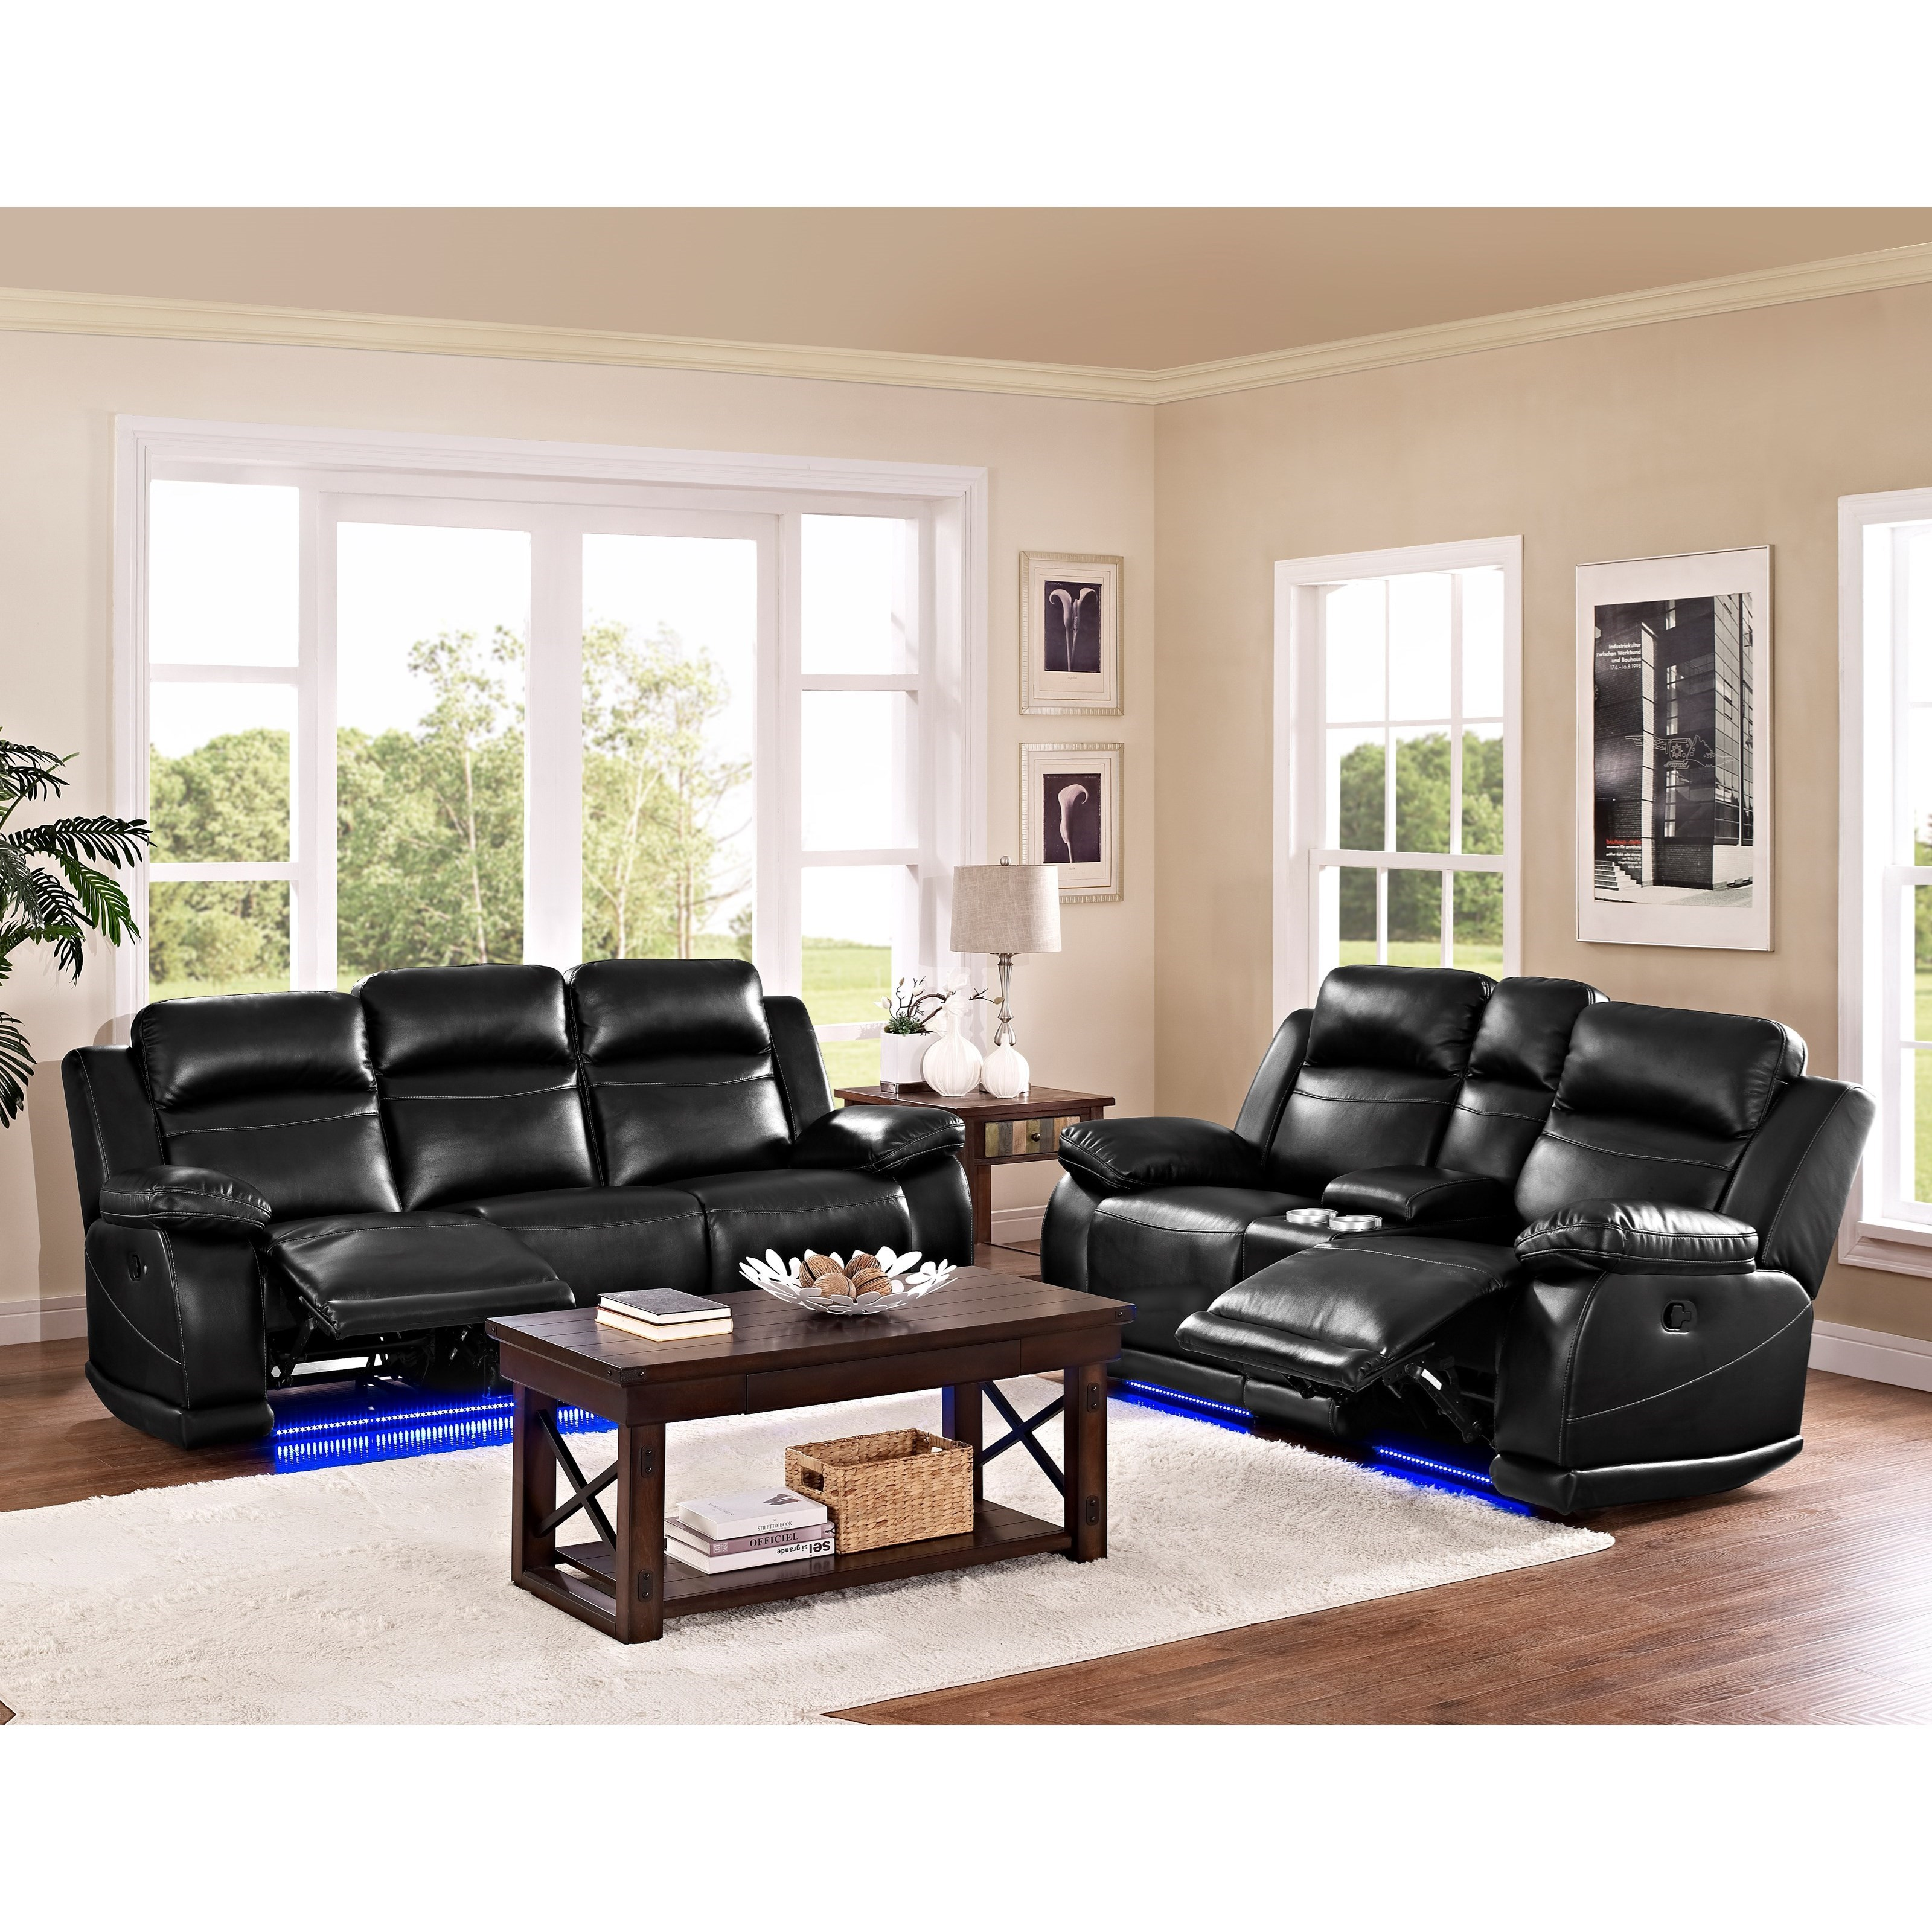 New classic vega reclining living room group adcock for Living room furniture groups